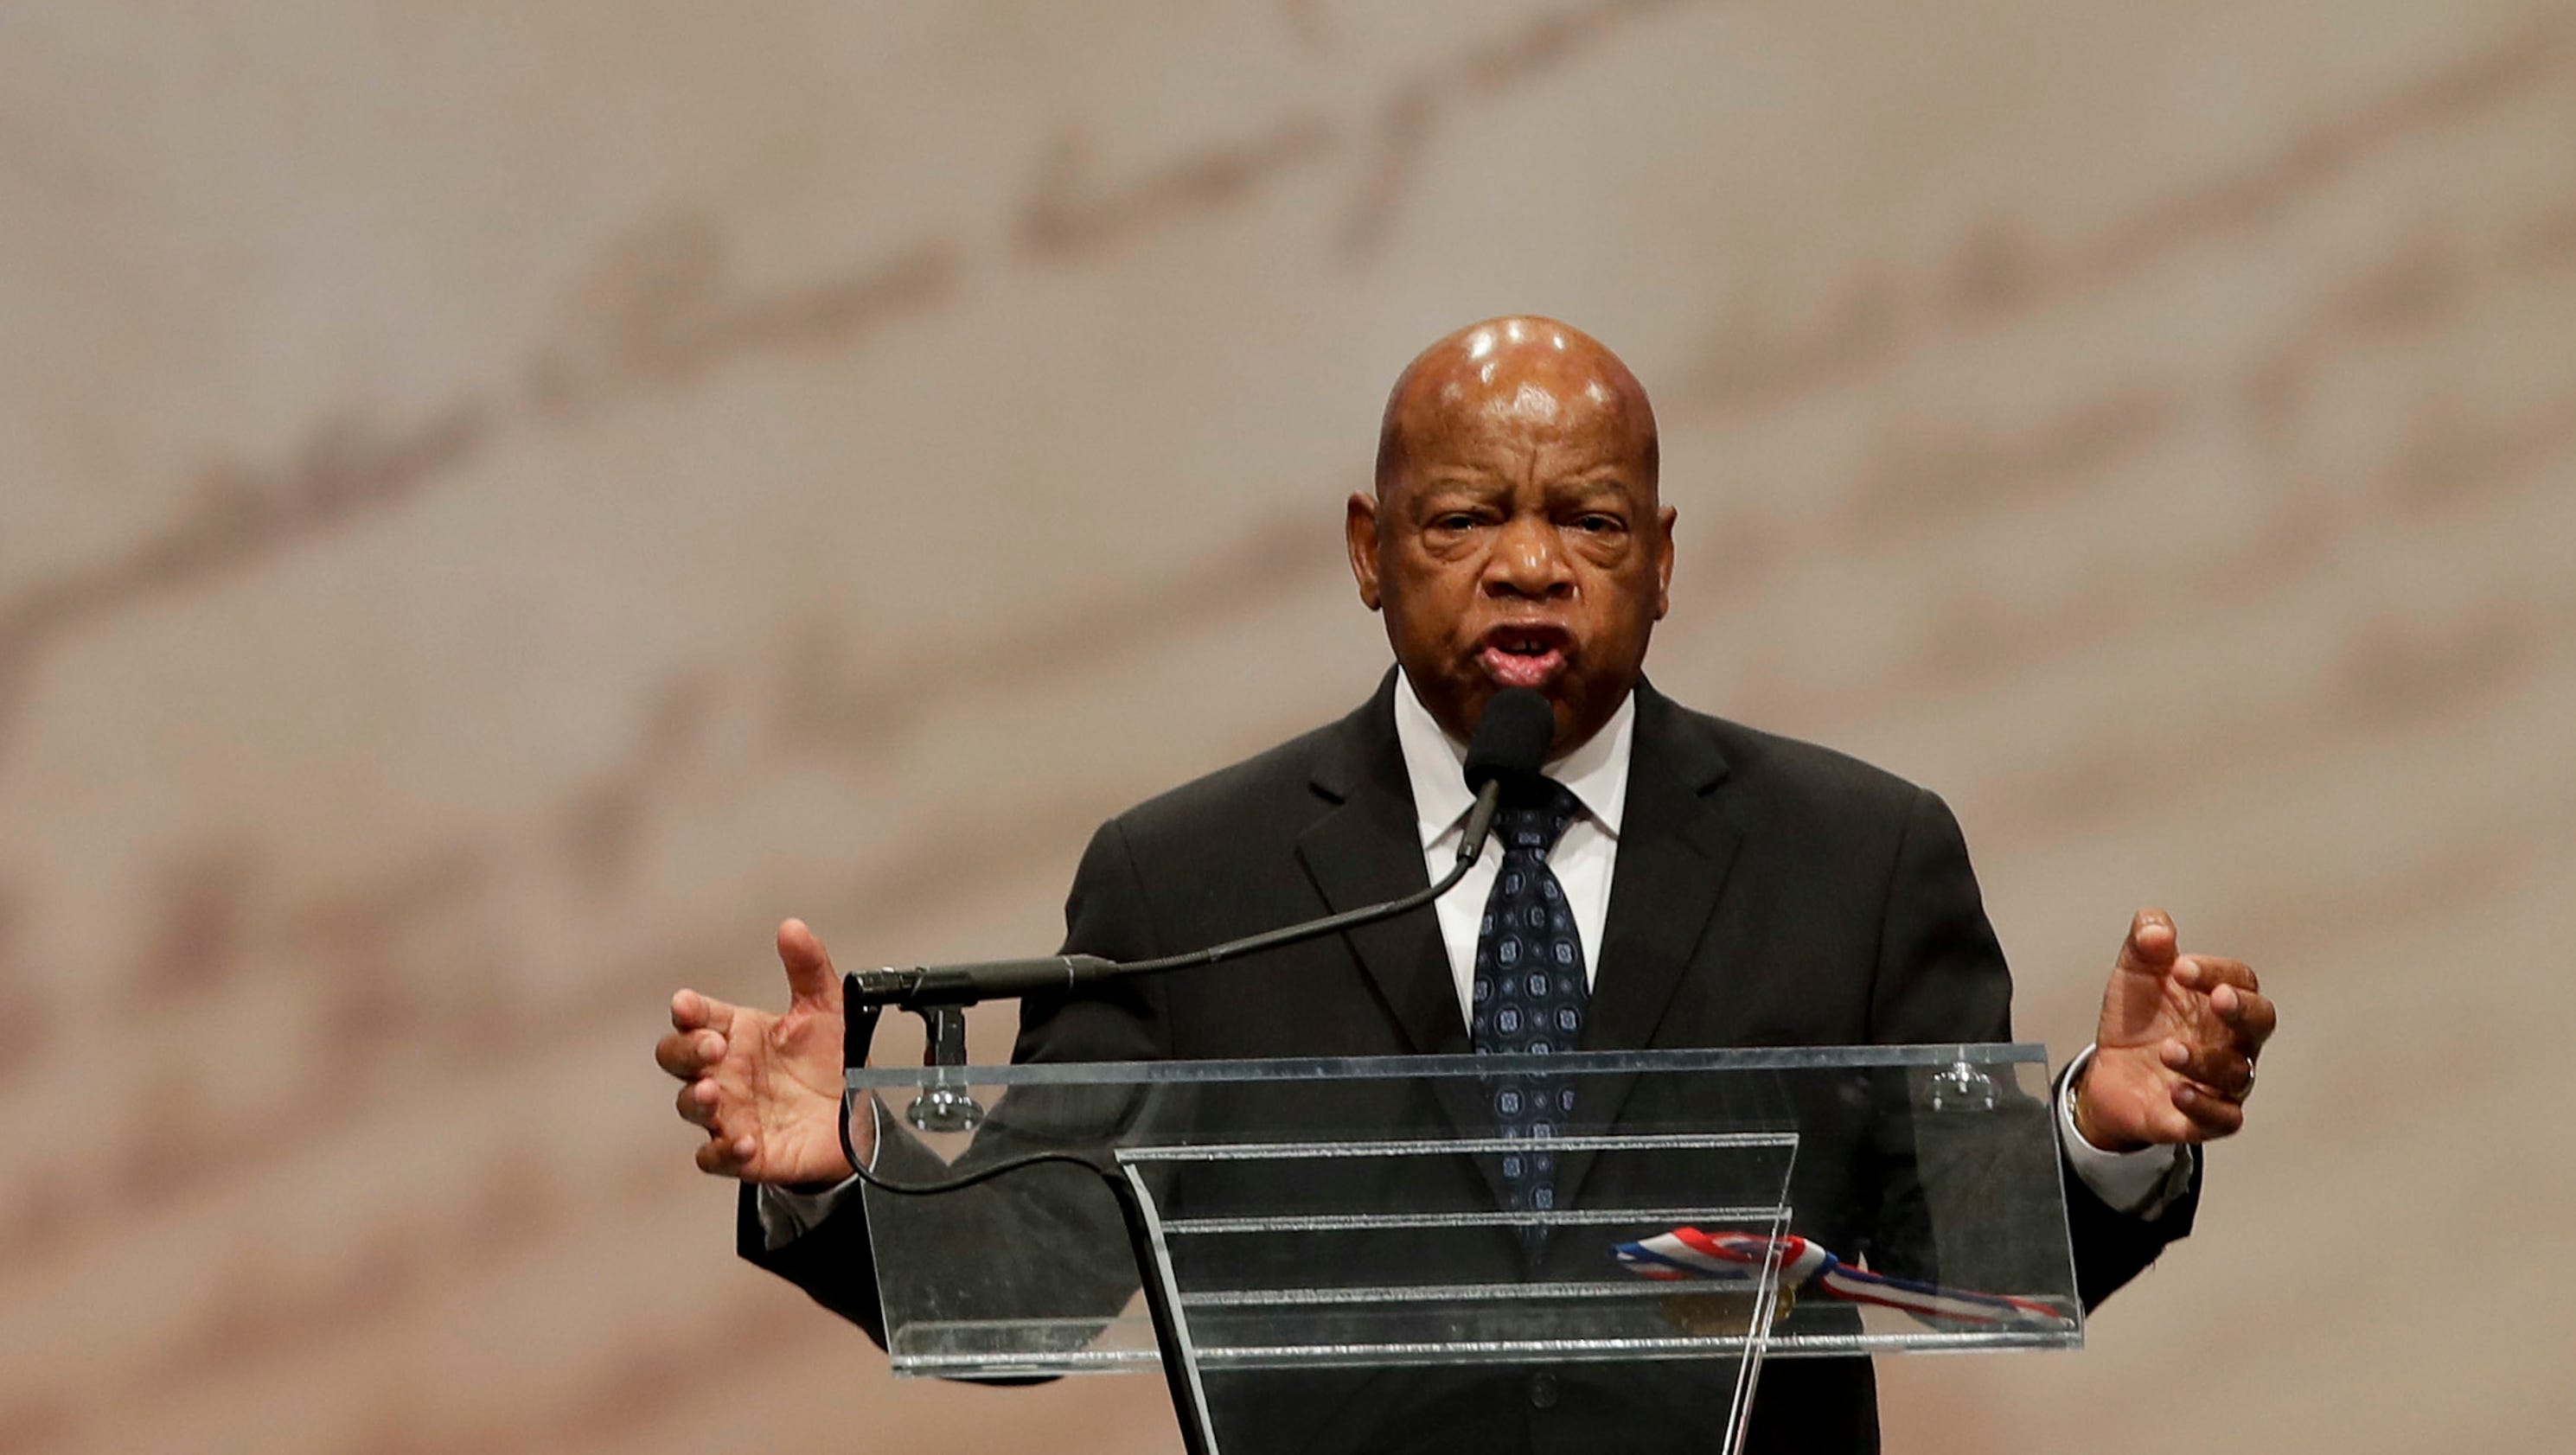 Trump slammed for attacking civil rights icon Rep. John Lewis